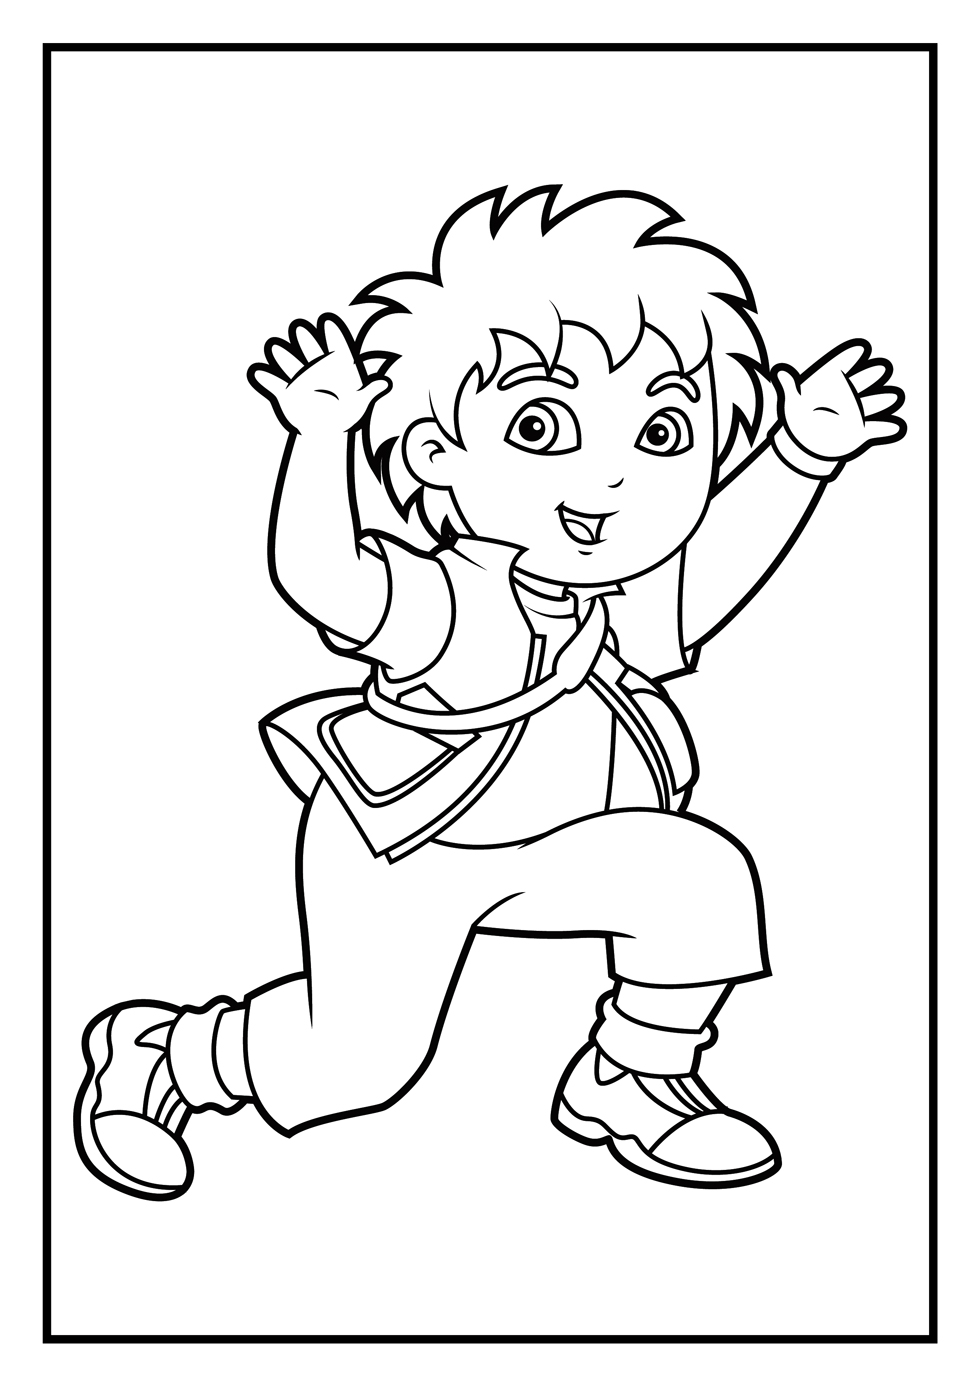 diego coloring pages free printable diego coloring pages for kids pages diego coloring